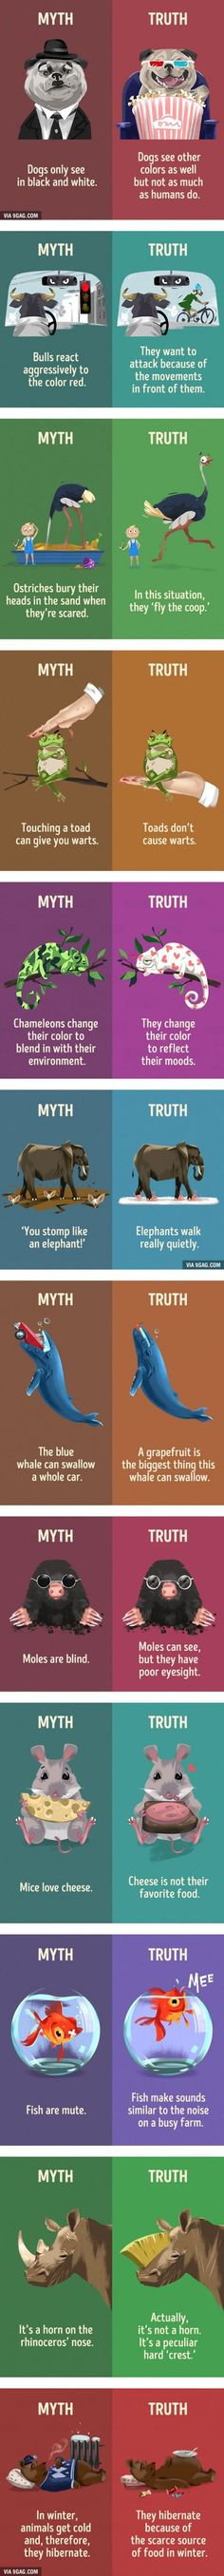 12 myths about animals that we still believe http://ibeebz.com